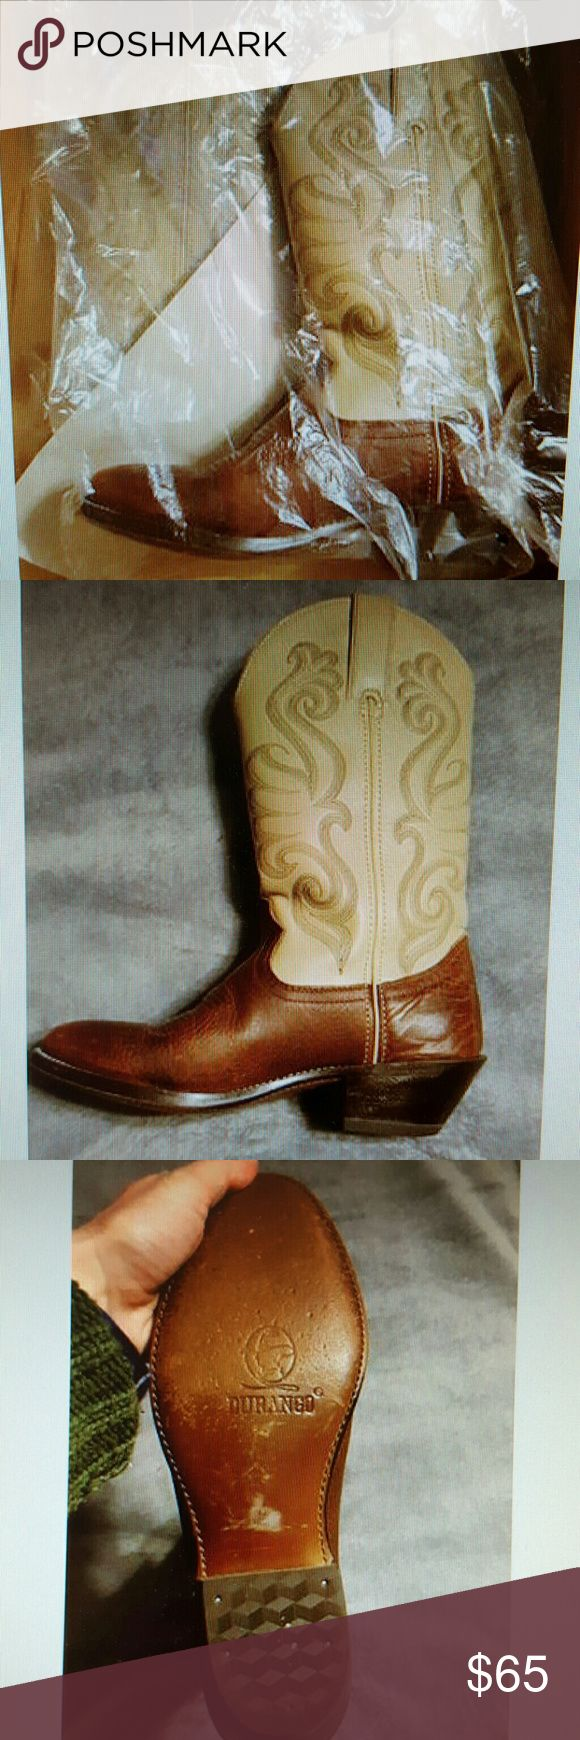 Durango Cowboy Boots Durango boots size 6.5 worn once. Durango Shoes Heeled Boots